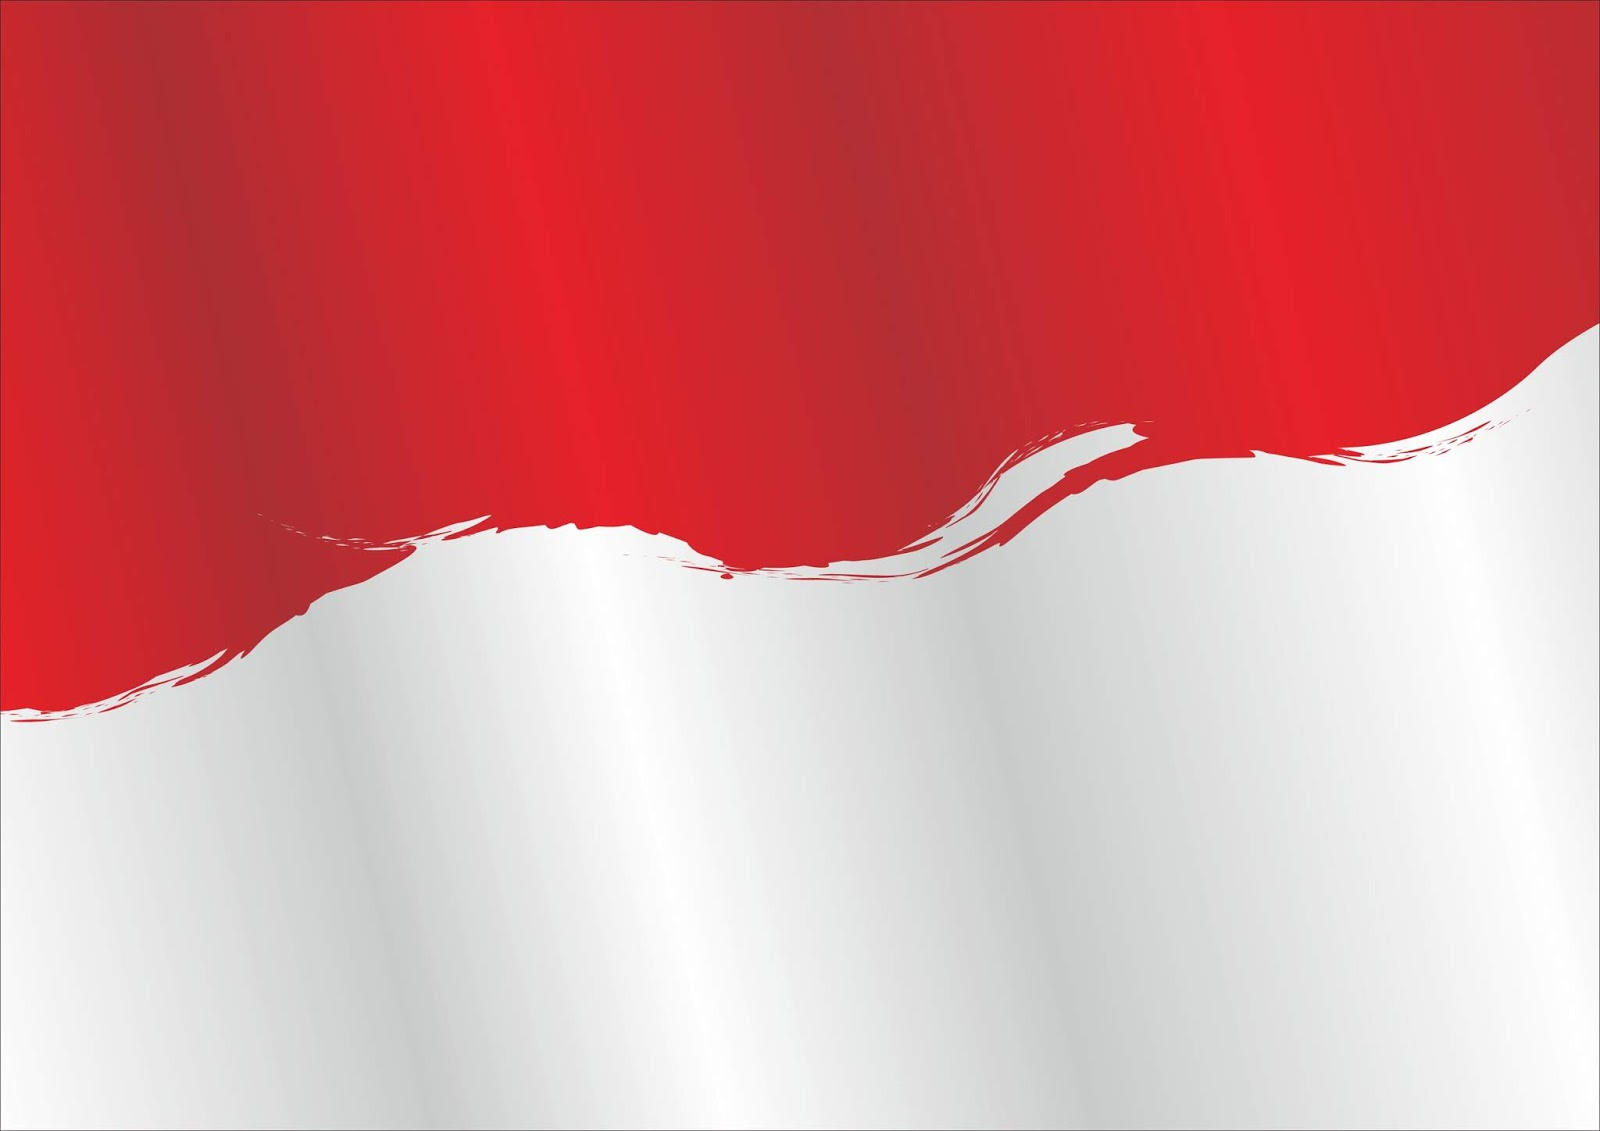 indonesian%2Bflag